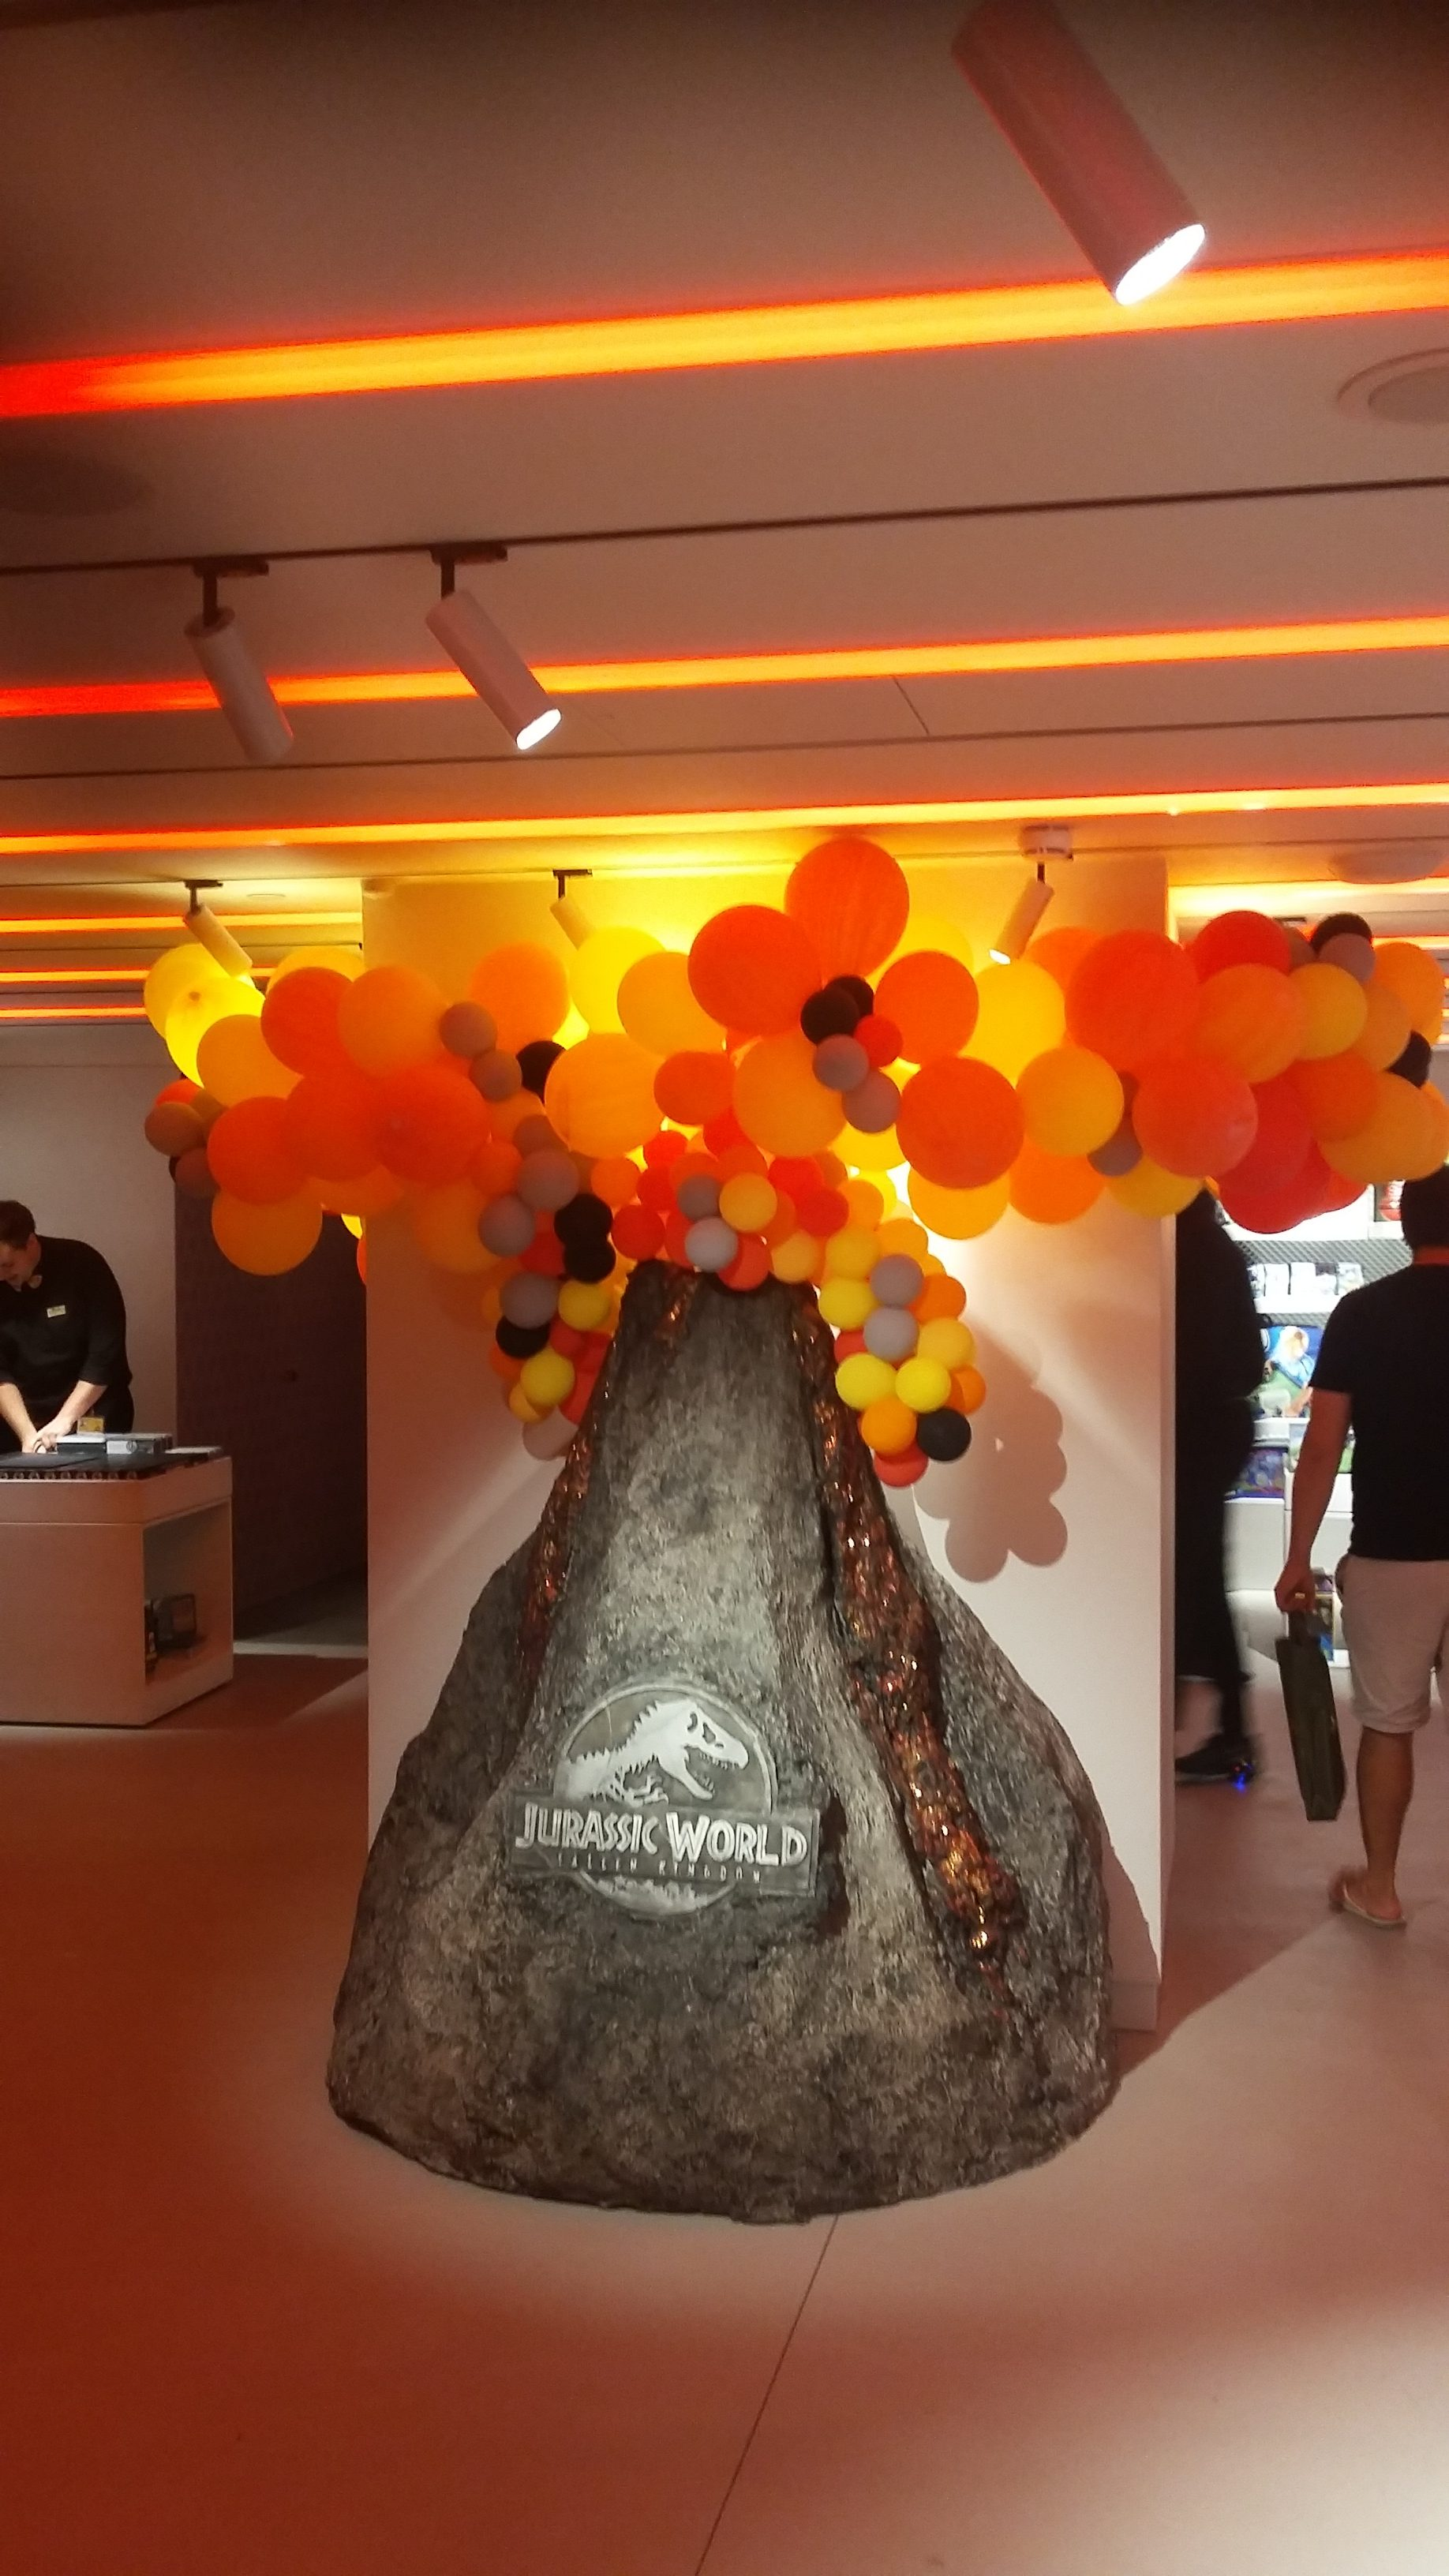 Harrods - Jurassic World volcano prop on display